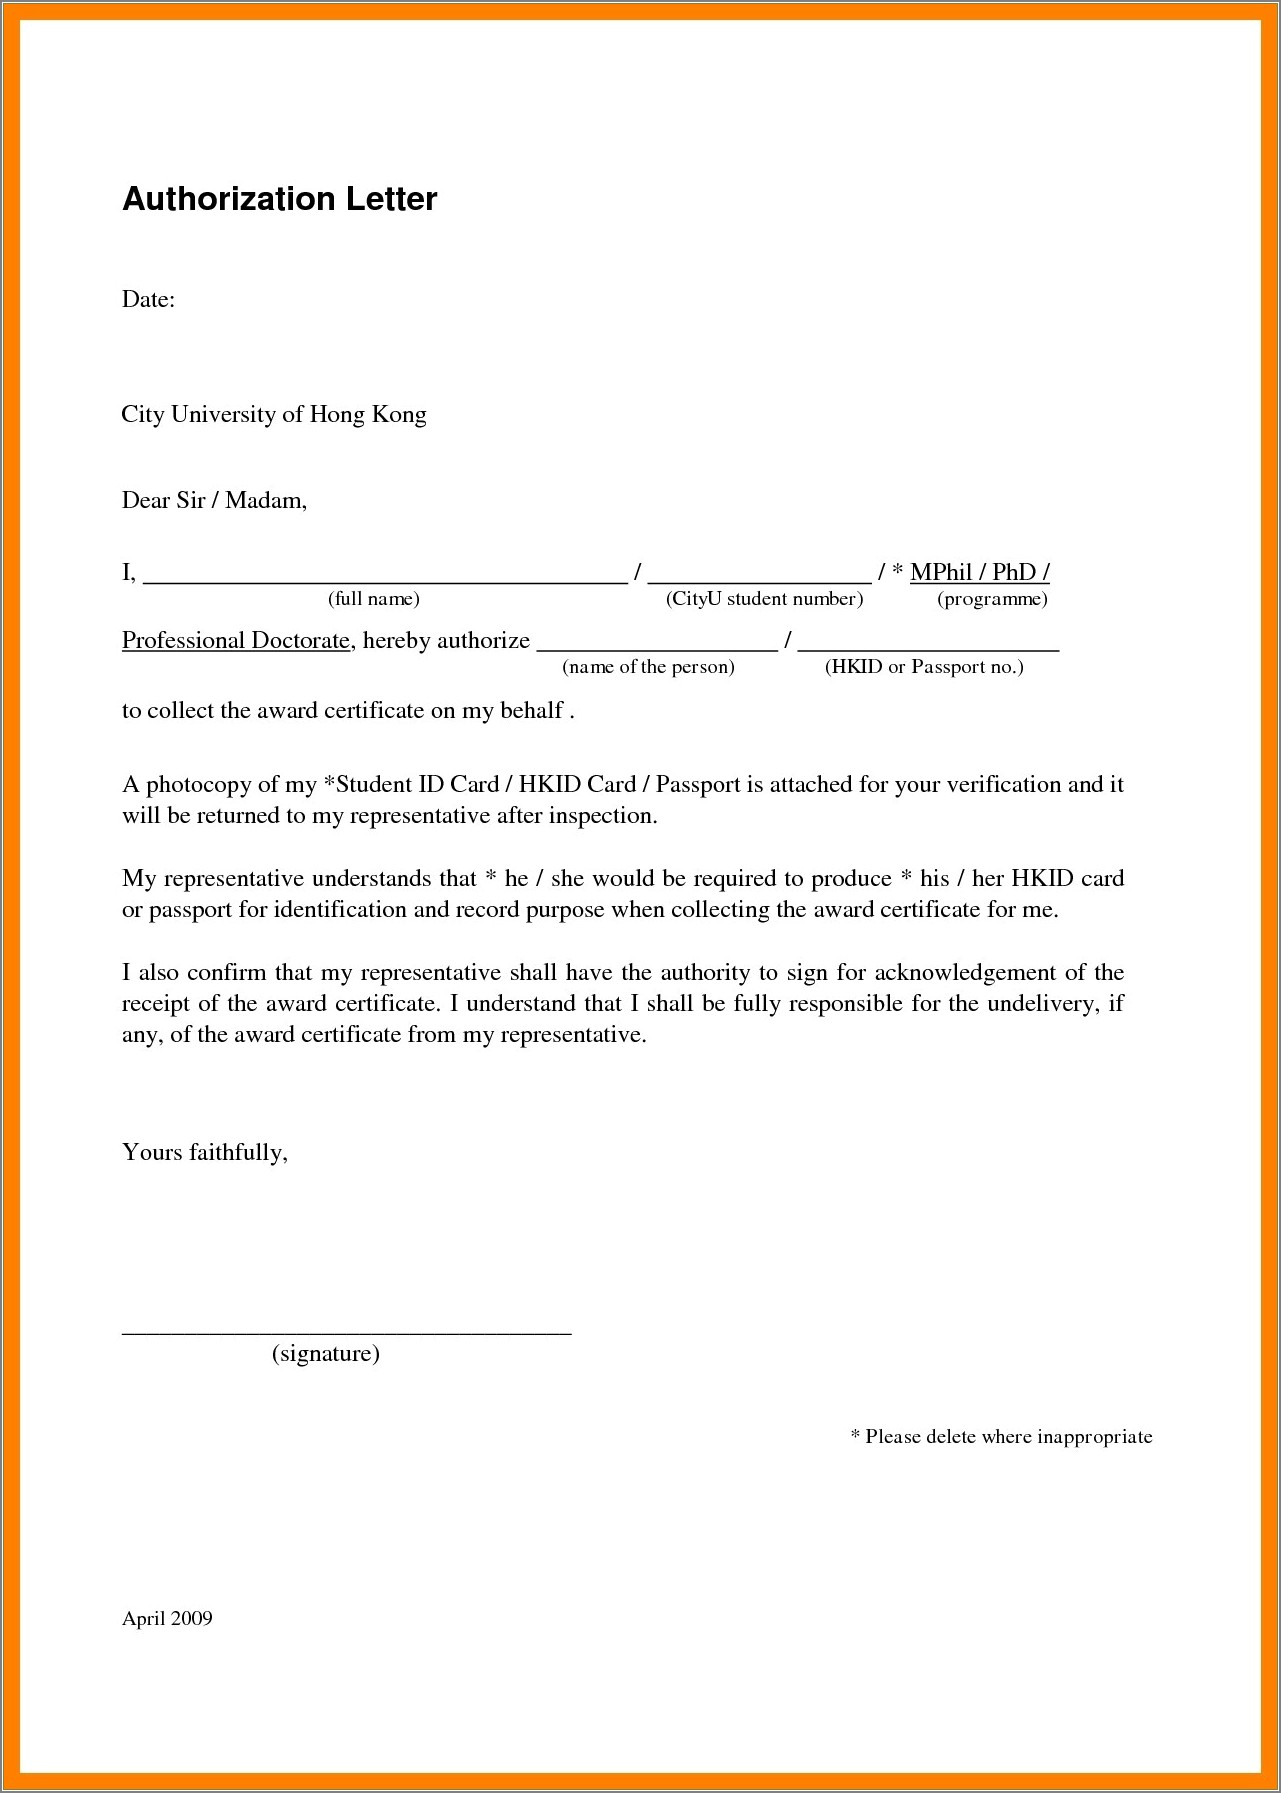 Authorization Letter For Passport Renewal